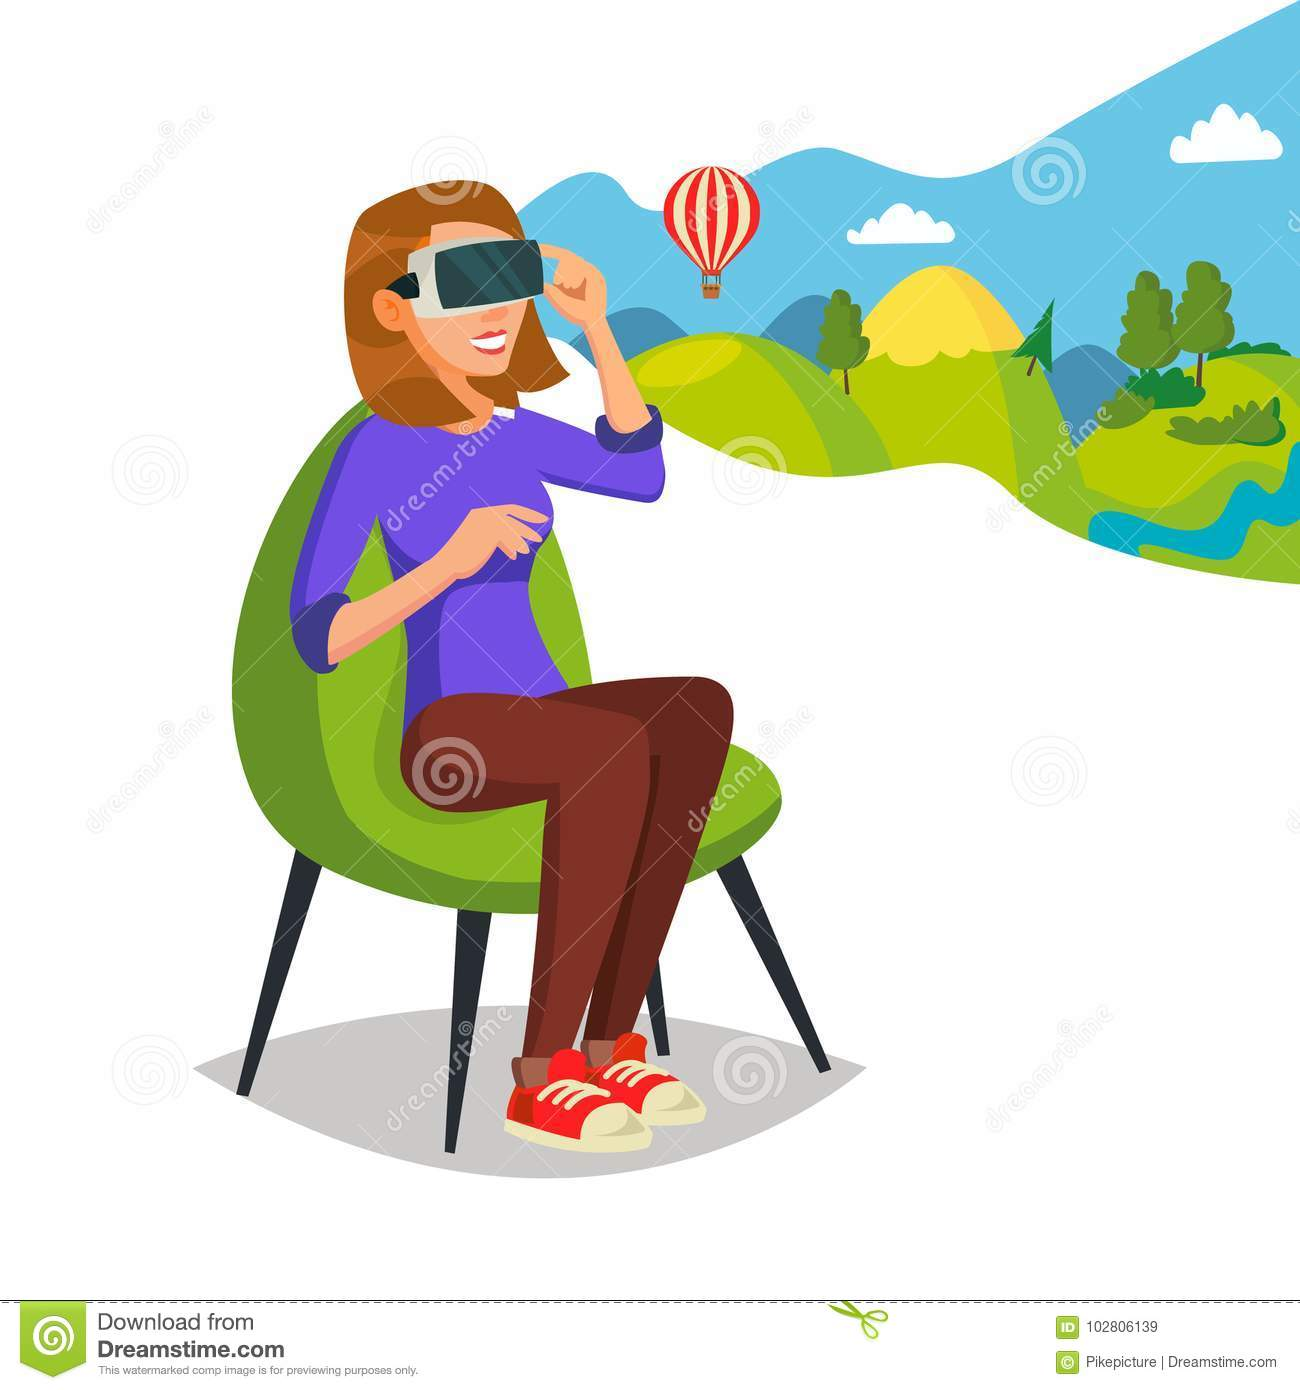 Collection Of Simulator Clipart: Virtual Reality Helmet, Glasses Vector. Innovation Play